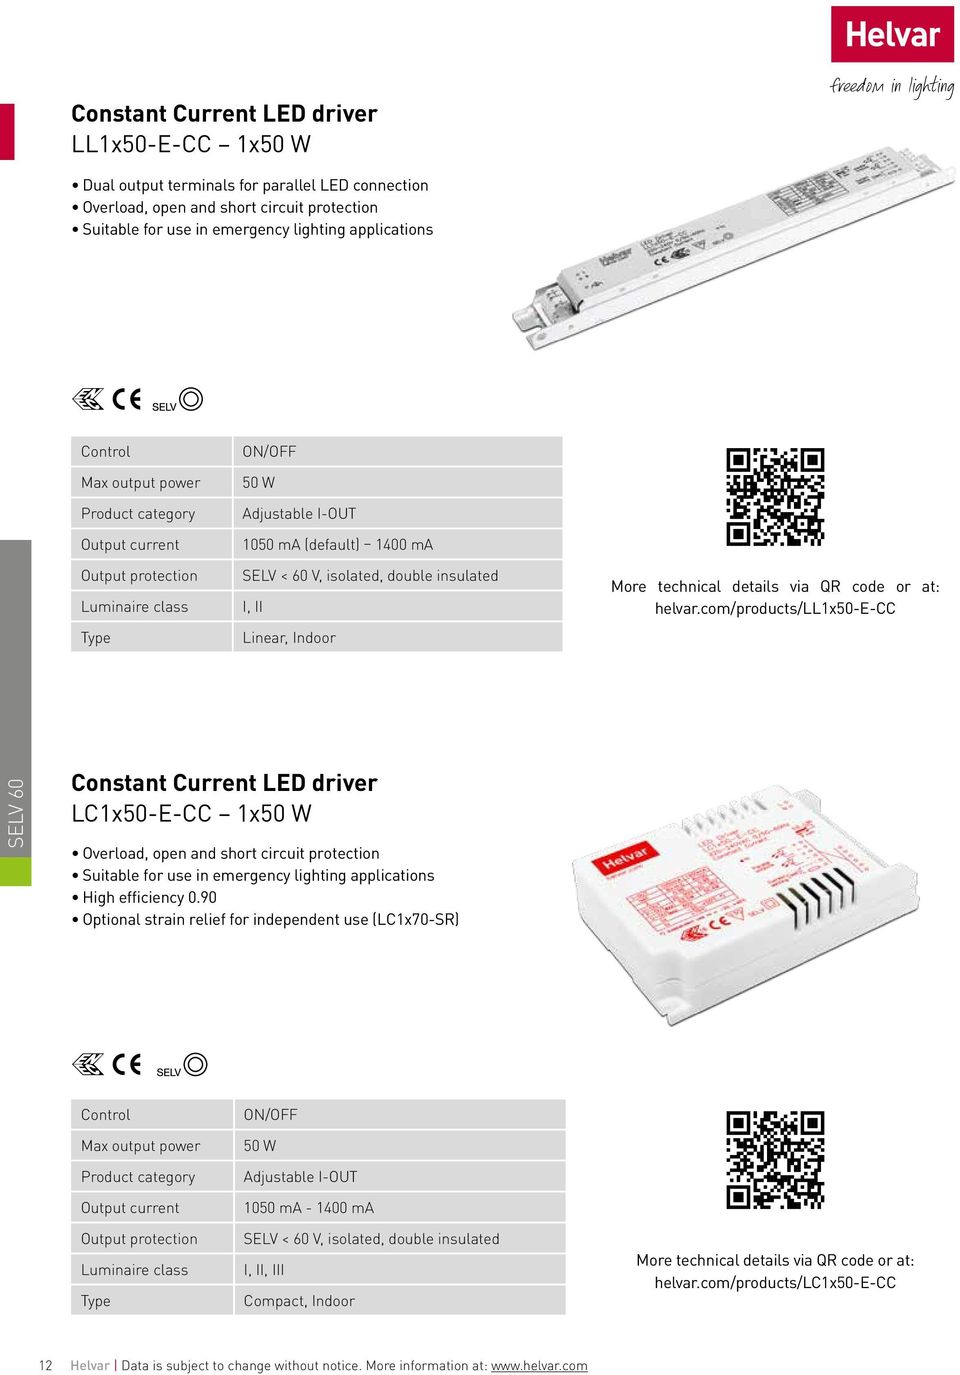 Led Modules Pages Accessories Page 37 Pdf 1050ma Flashlight Driver Board 5 Mode Circuit Com Products Ll1x50 E Cc Selv 60 Constant Current Lc1x50